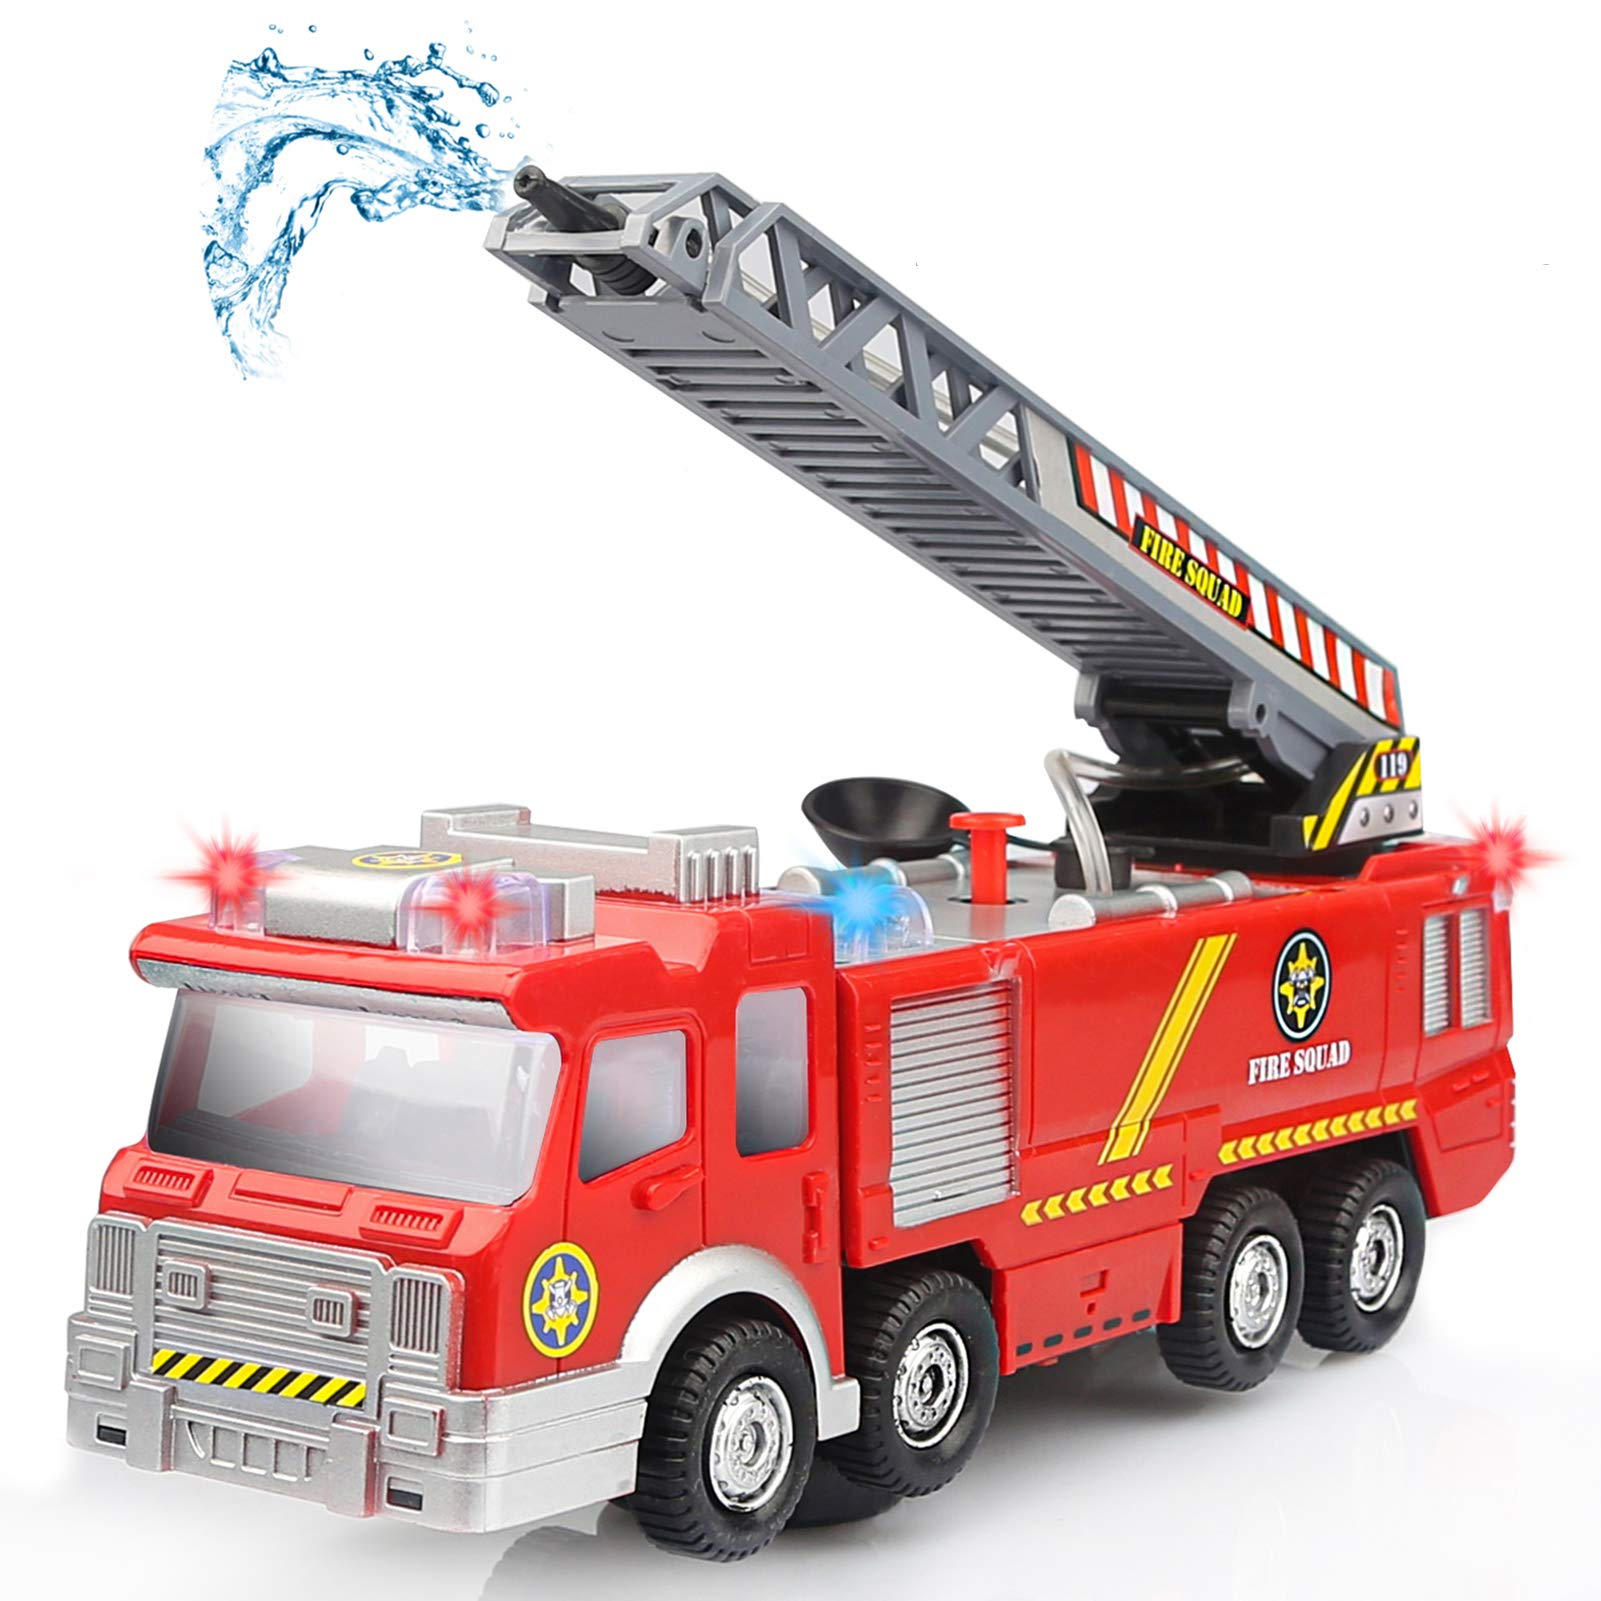 YIMORE Kids Fire Engine Truck Toy Rescue Vehicle Go Action Car toy For Kids (Fire truck)